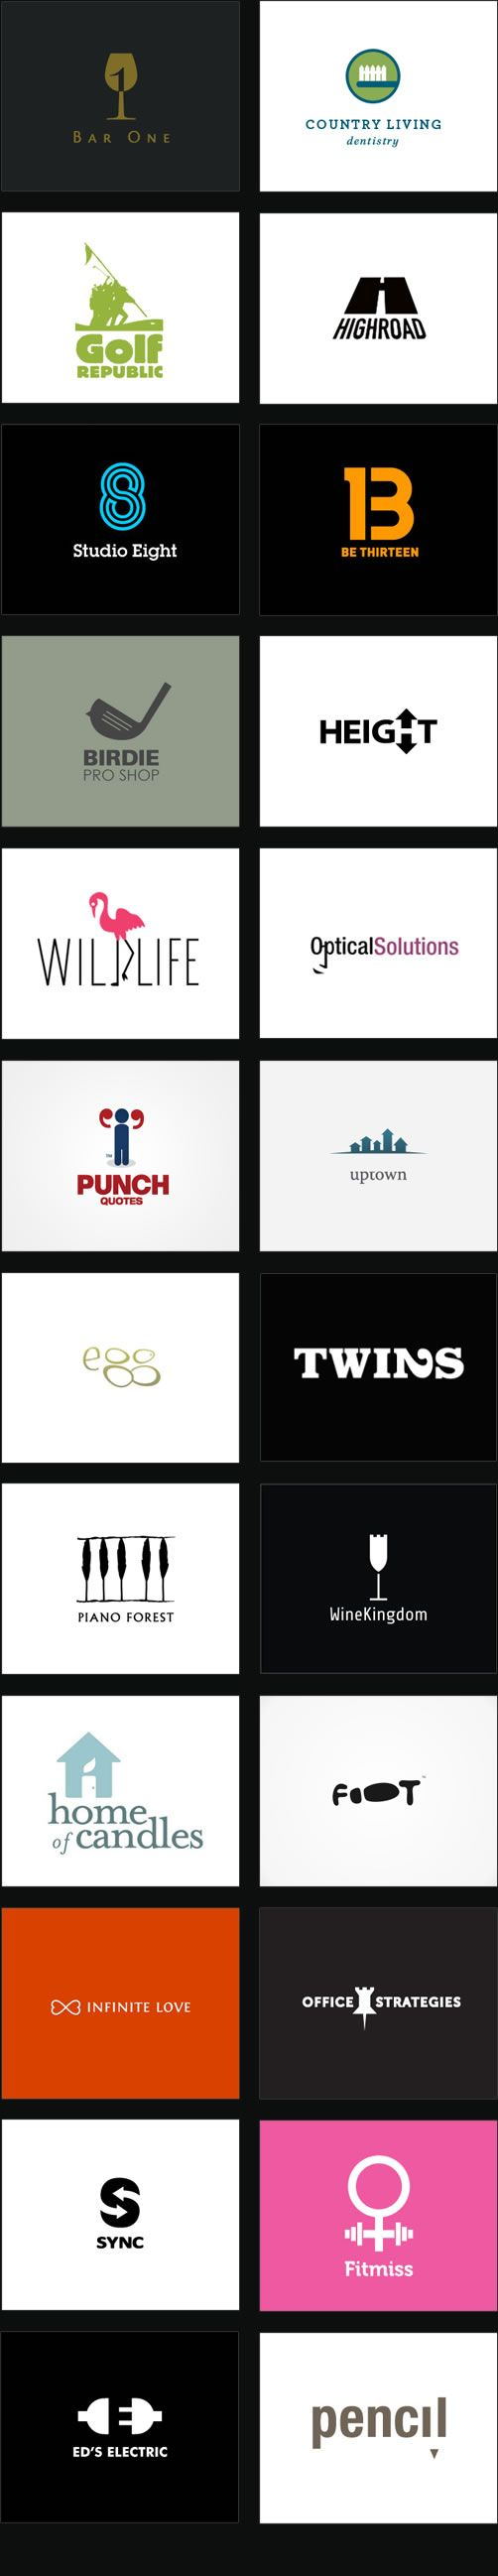 a round up of clever logos - mostly using funny names and figure-ground